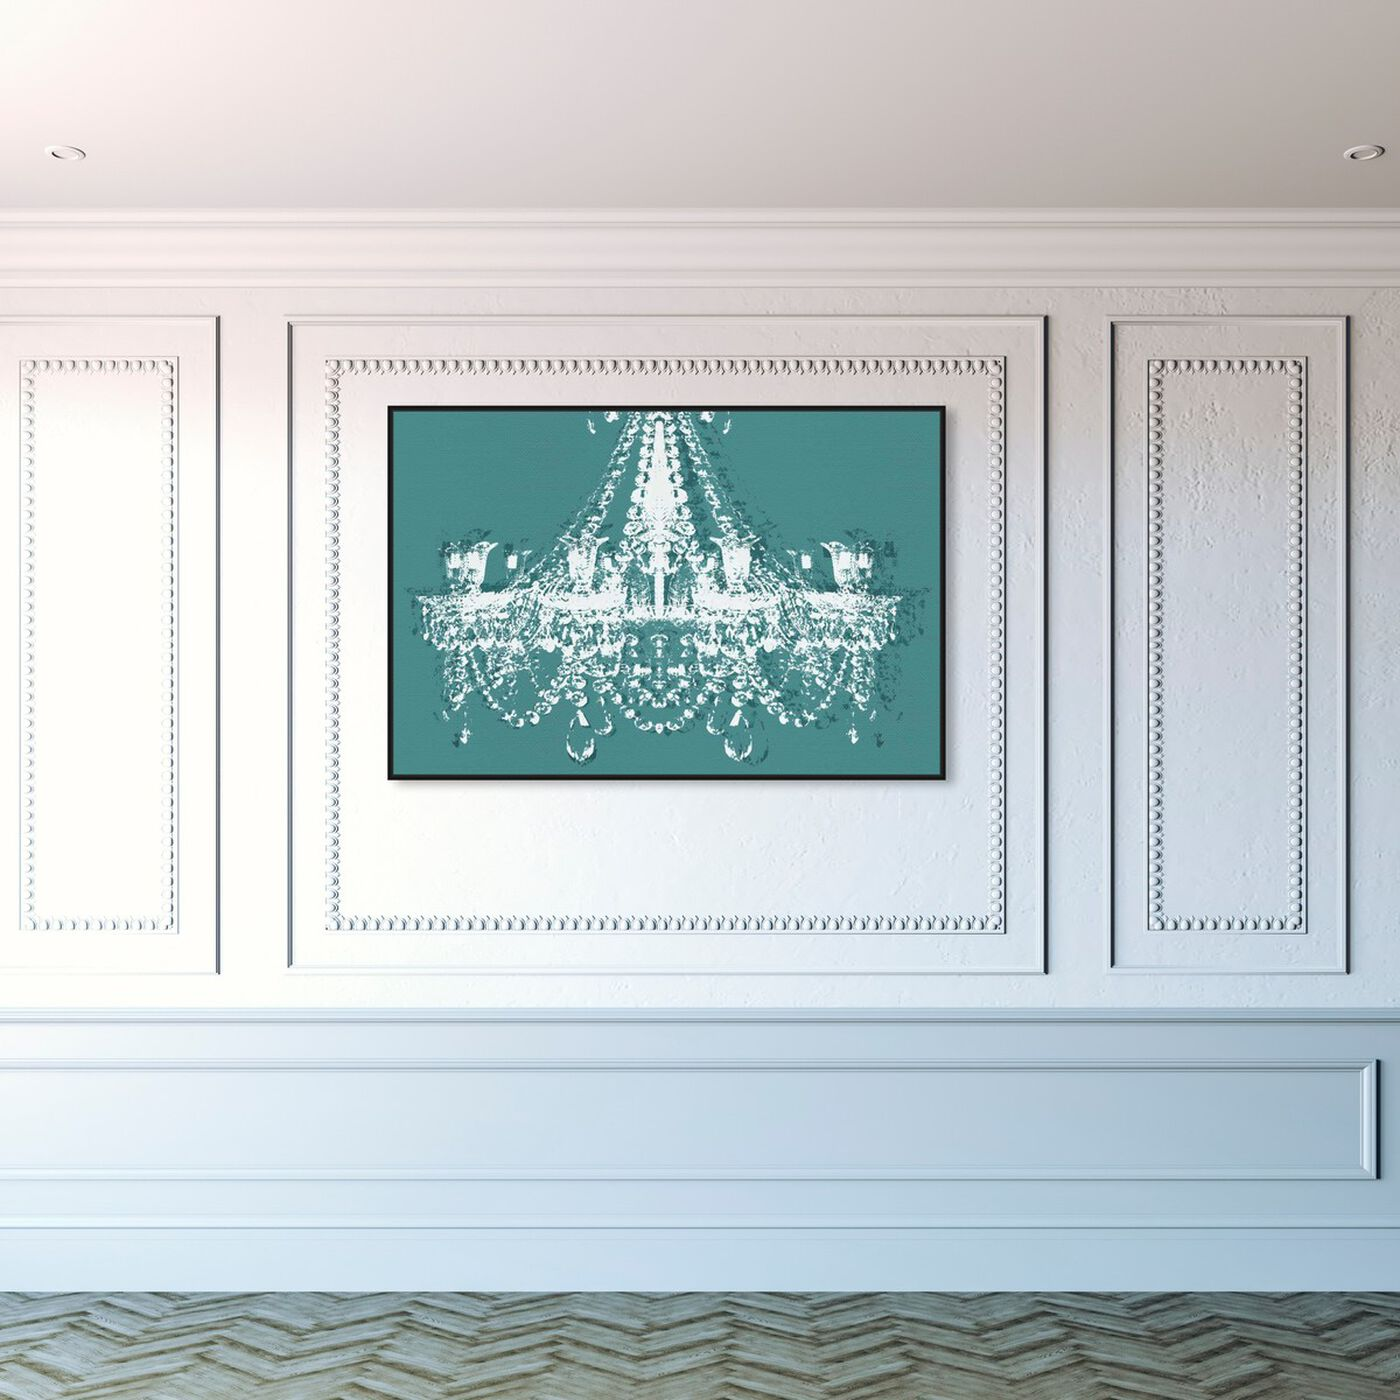 Hanging view of Dramatic Entrance Sarcelle featuring fashion and glam and chandeliers art.